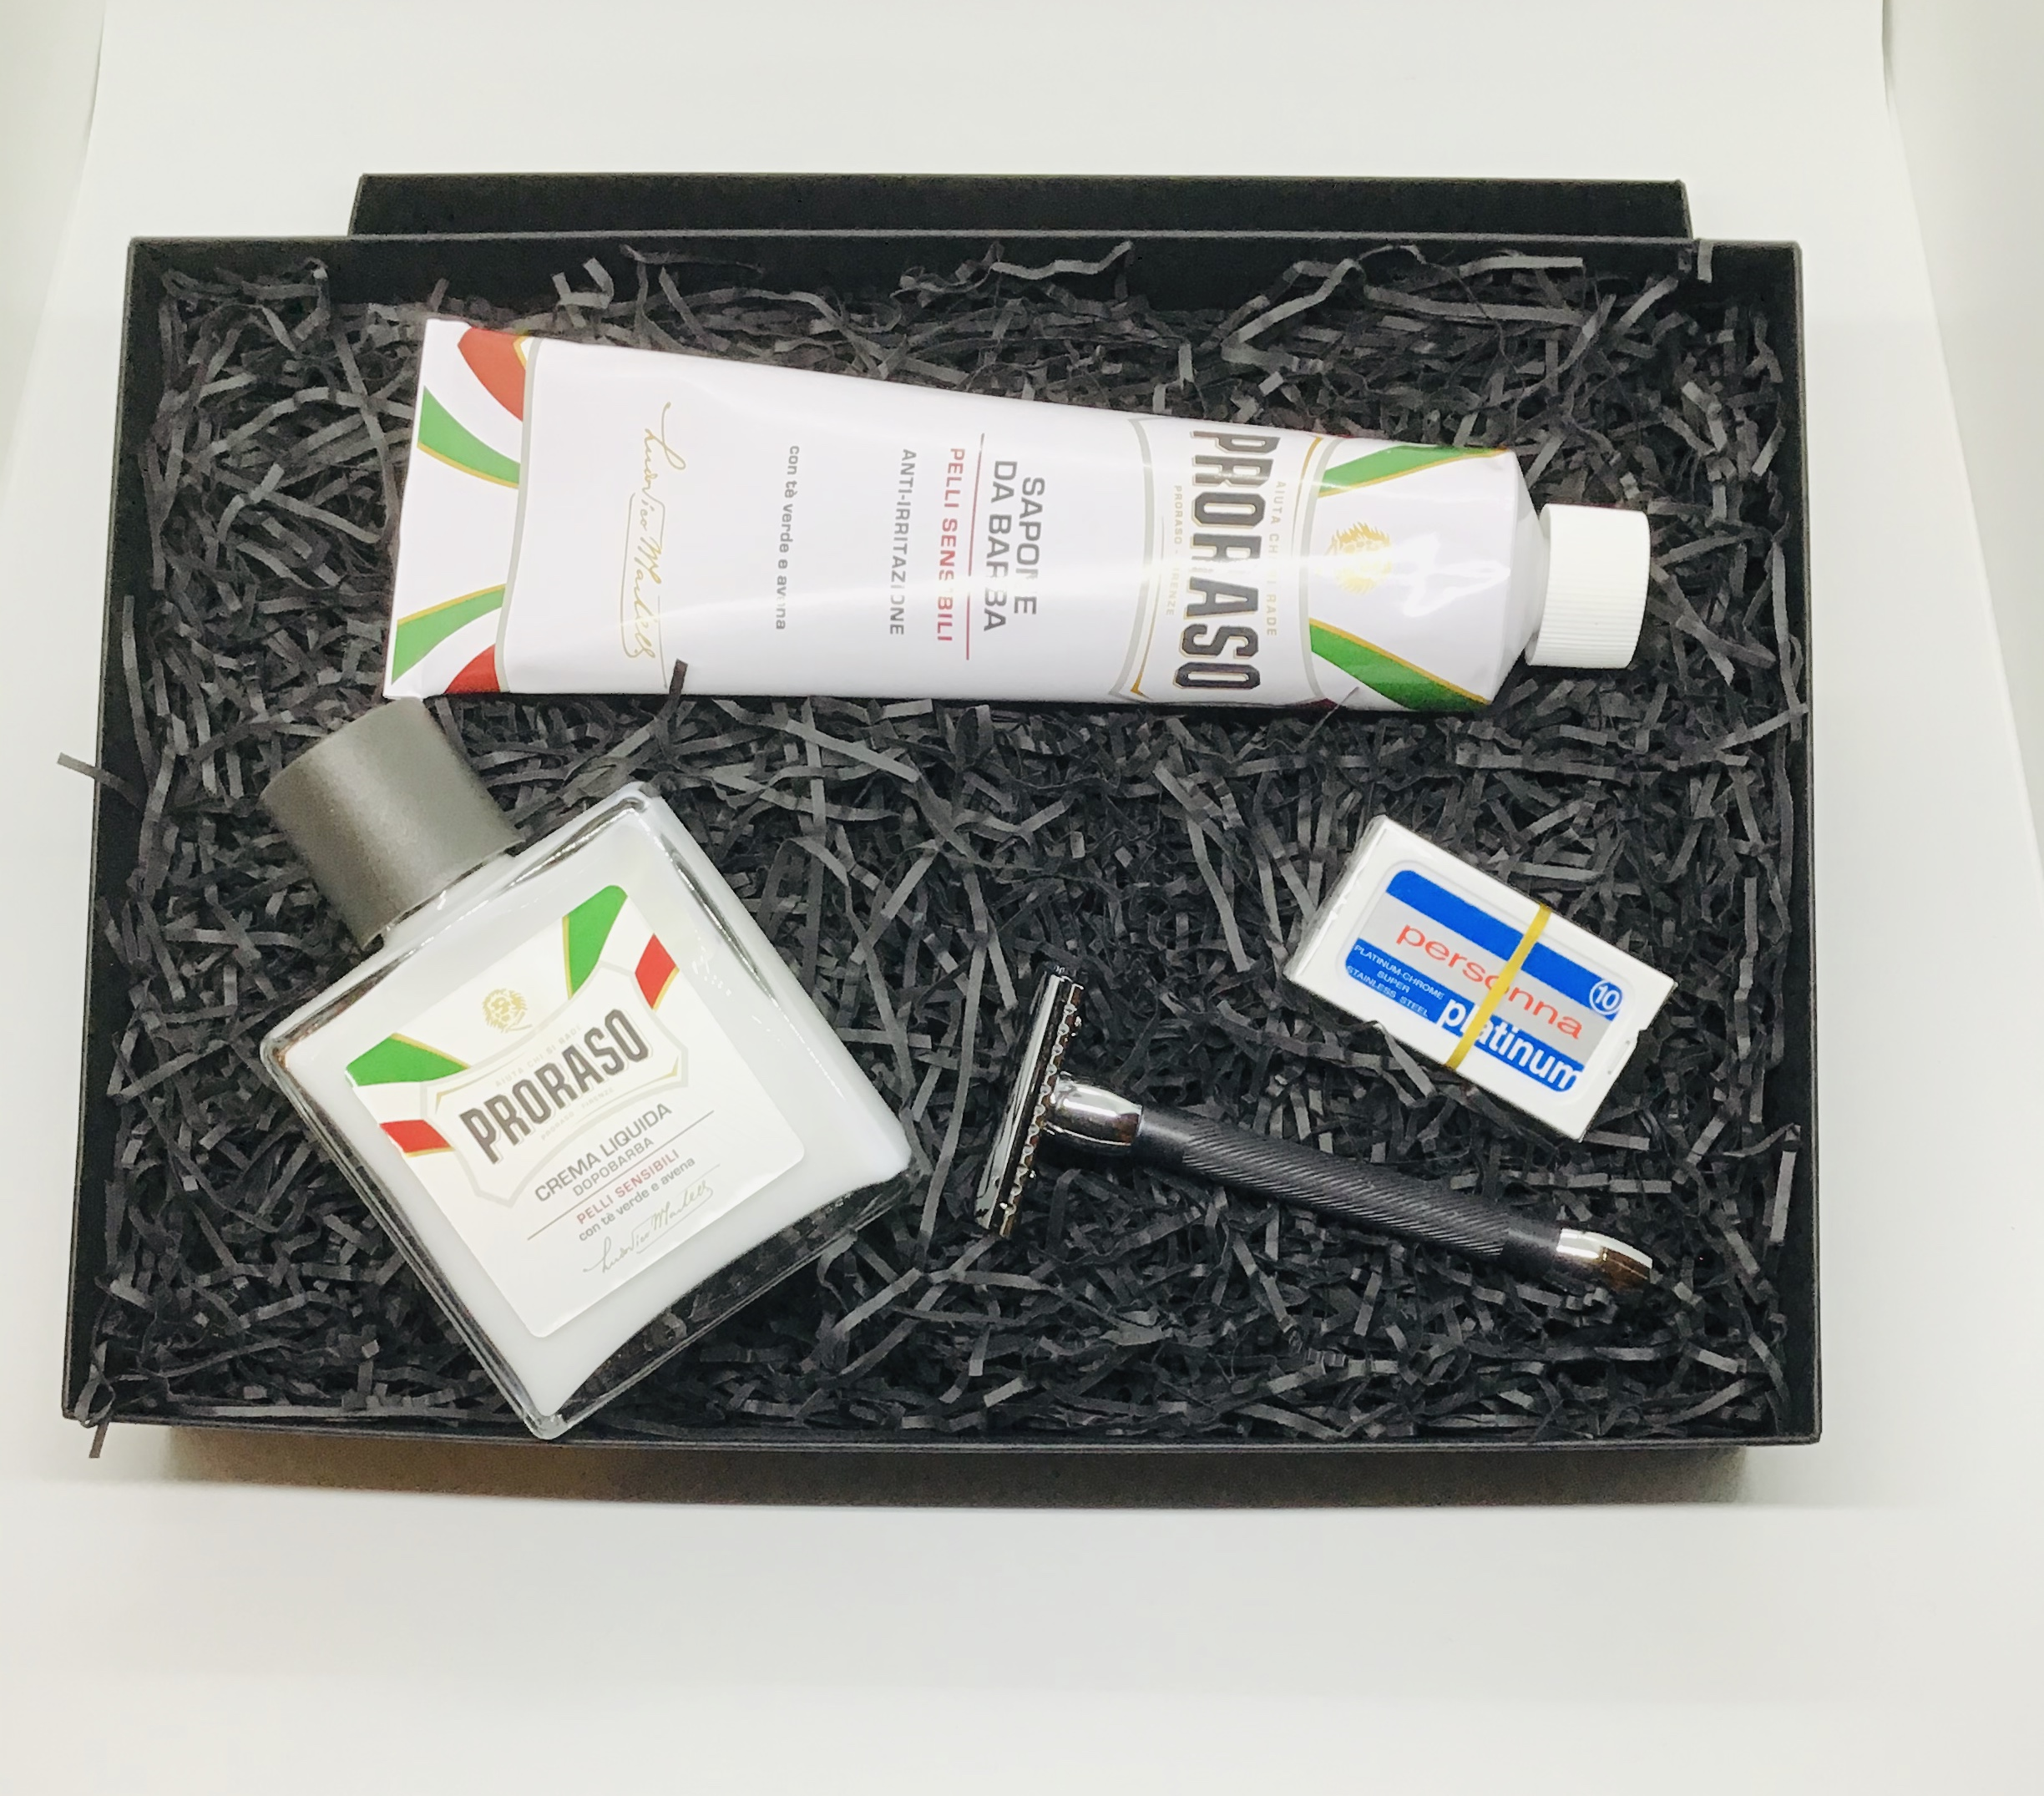 Merkur 20 Proraso kit Gift box